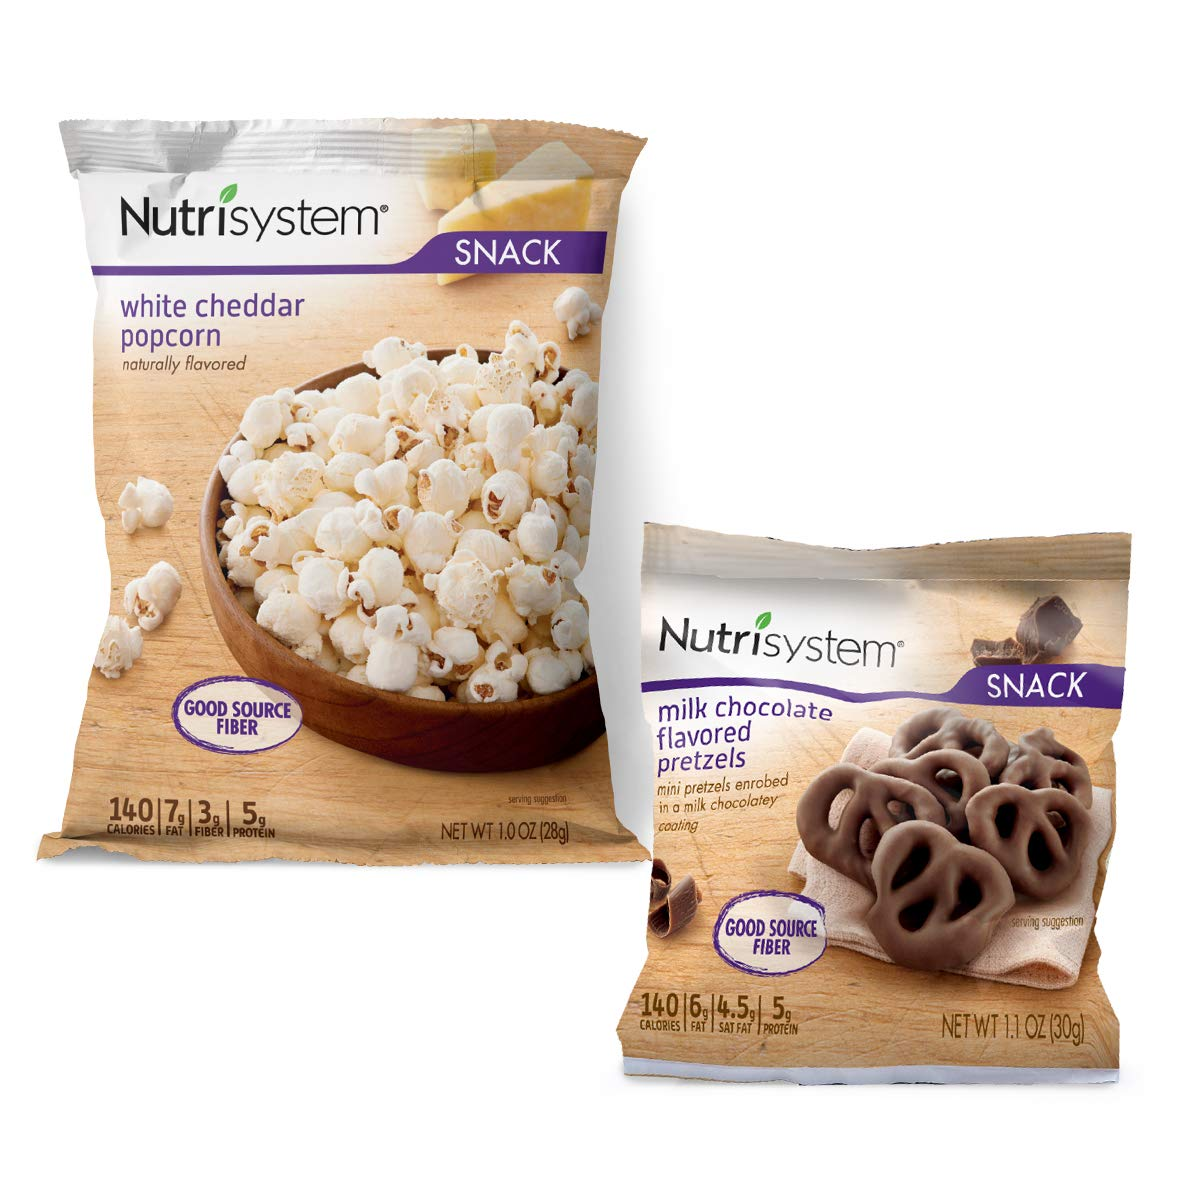 Nutrisystem® Movie Night Snack Pack, 10 ct, Chocolate Covered Pretzels and White Cheddar Popcorn